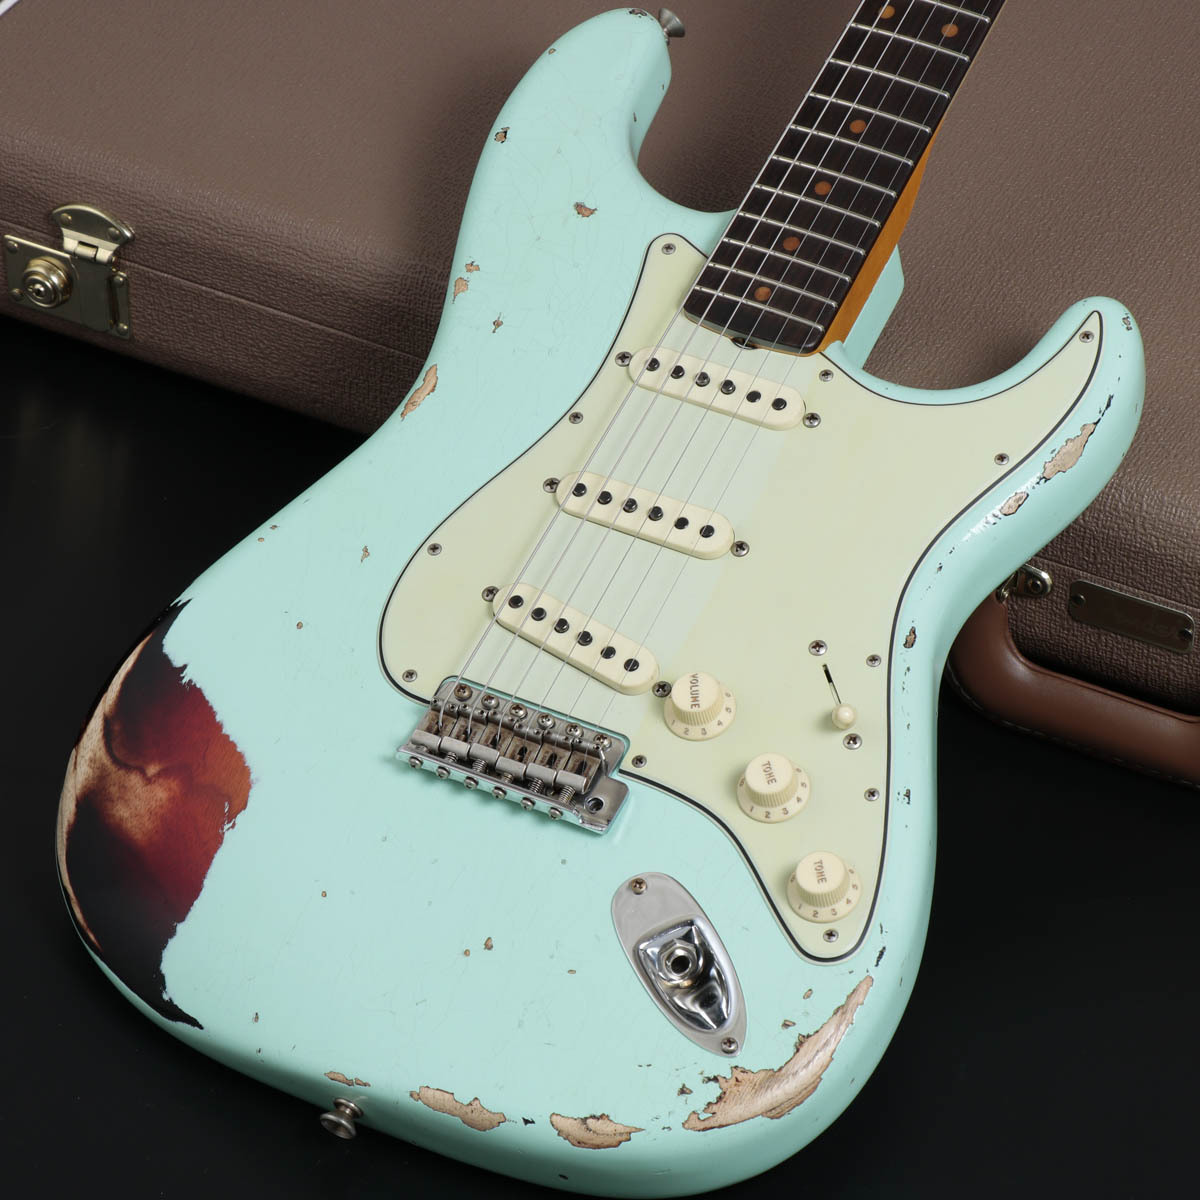 Fender Custom Shop 2018 MID YEAR COLLECTION LIMITED EDITION 1962 ST Heavy Relic Surf Green over 3TS 【御茶ノ水FG】